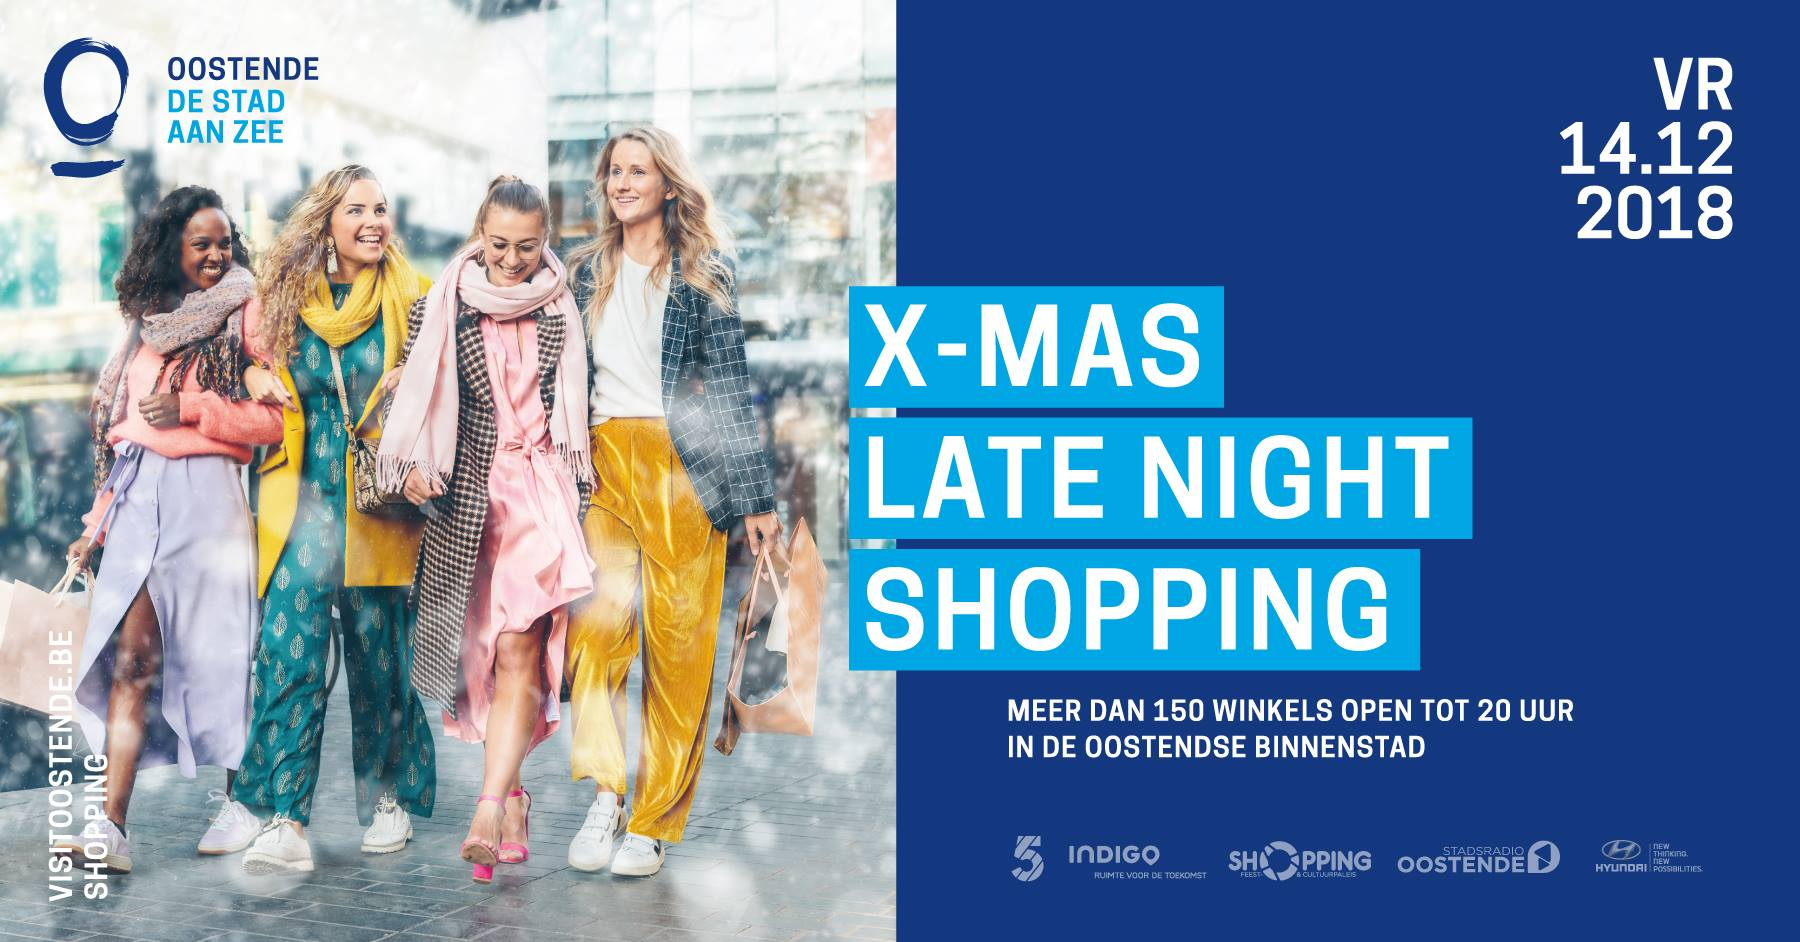 X-mas late night shopping 14 december Oostende